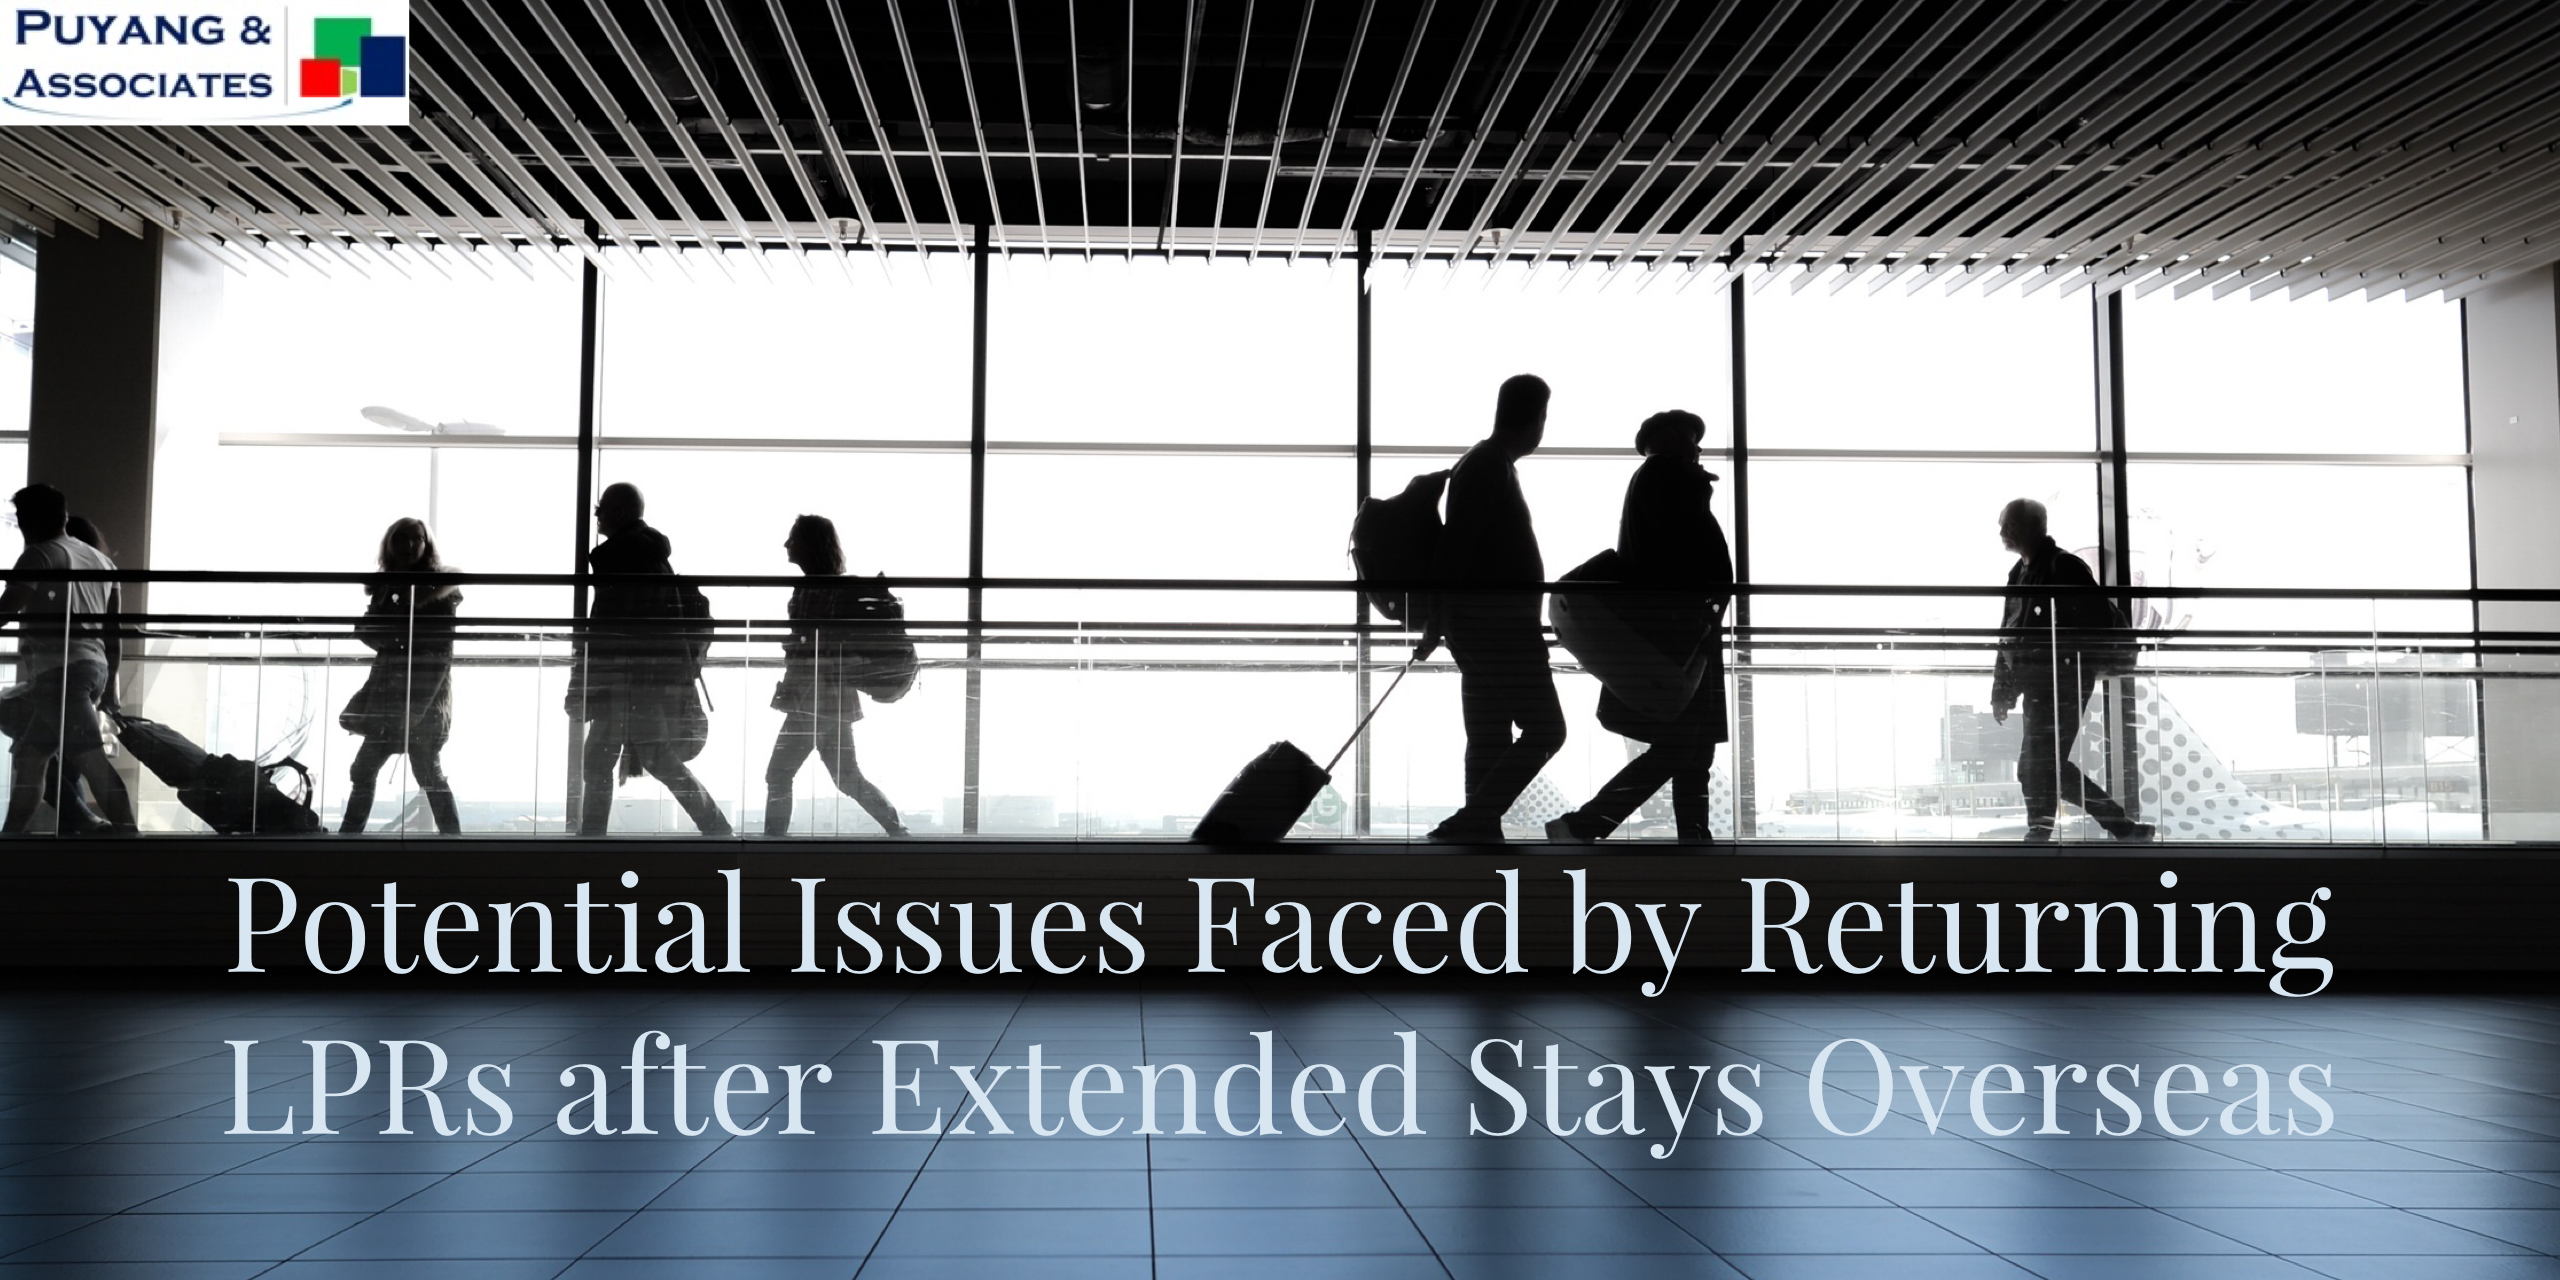 Potential Issues Faced by Returning LPRs after Extended Stays Overseas